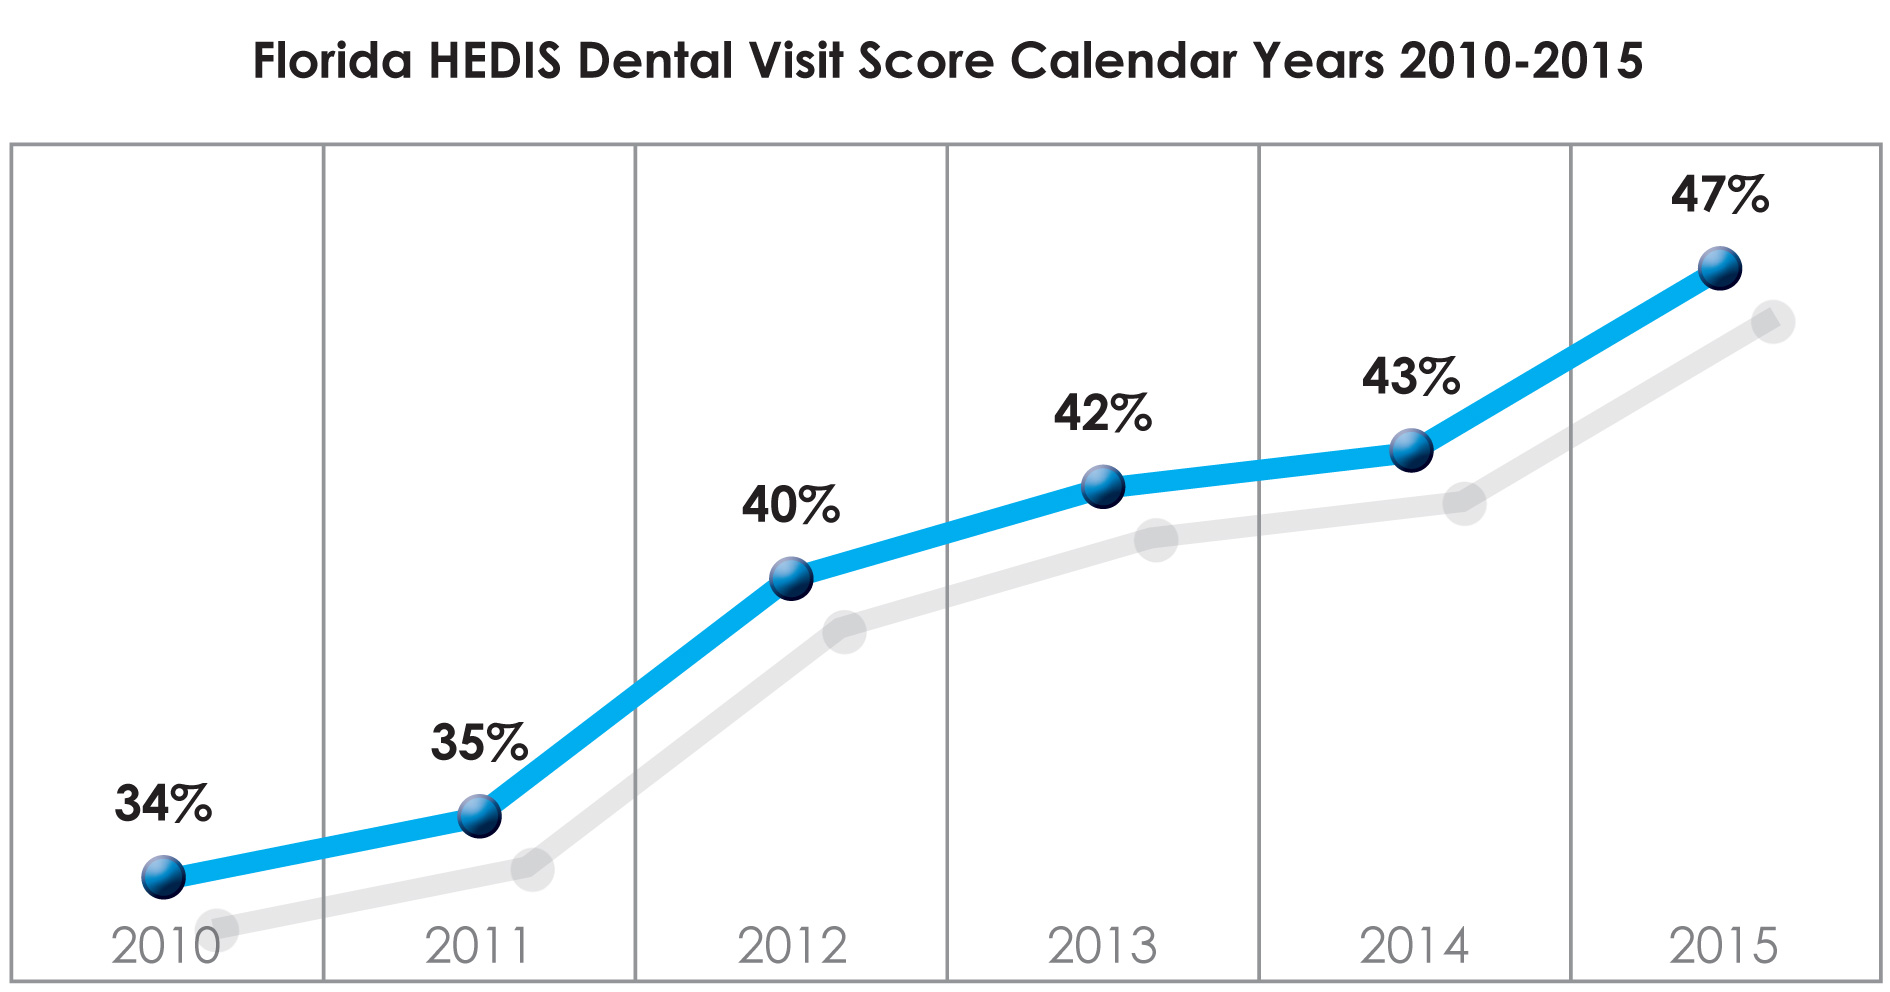 FL HEDIS dental visit score graph